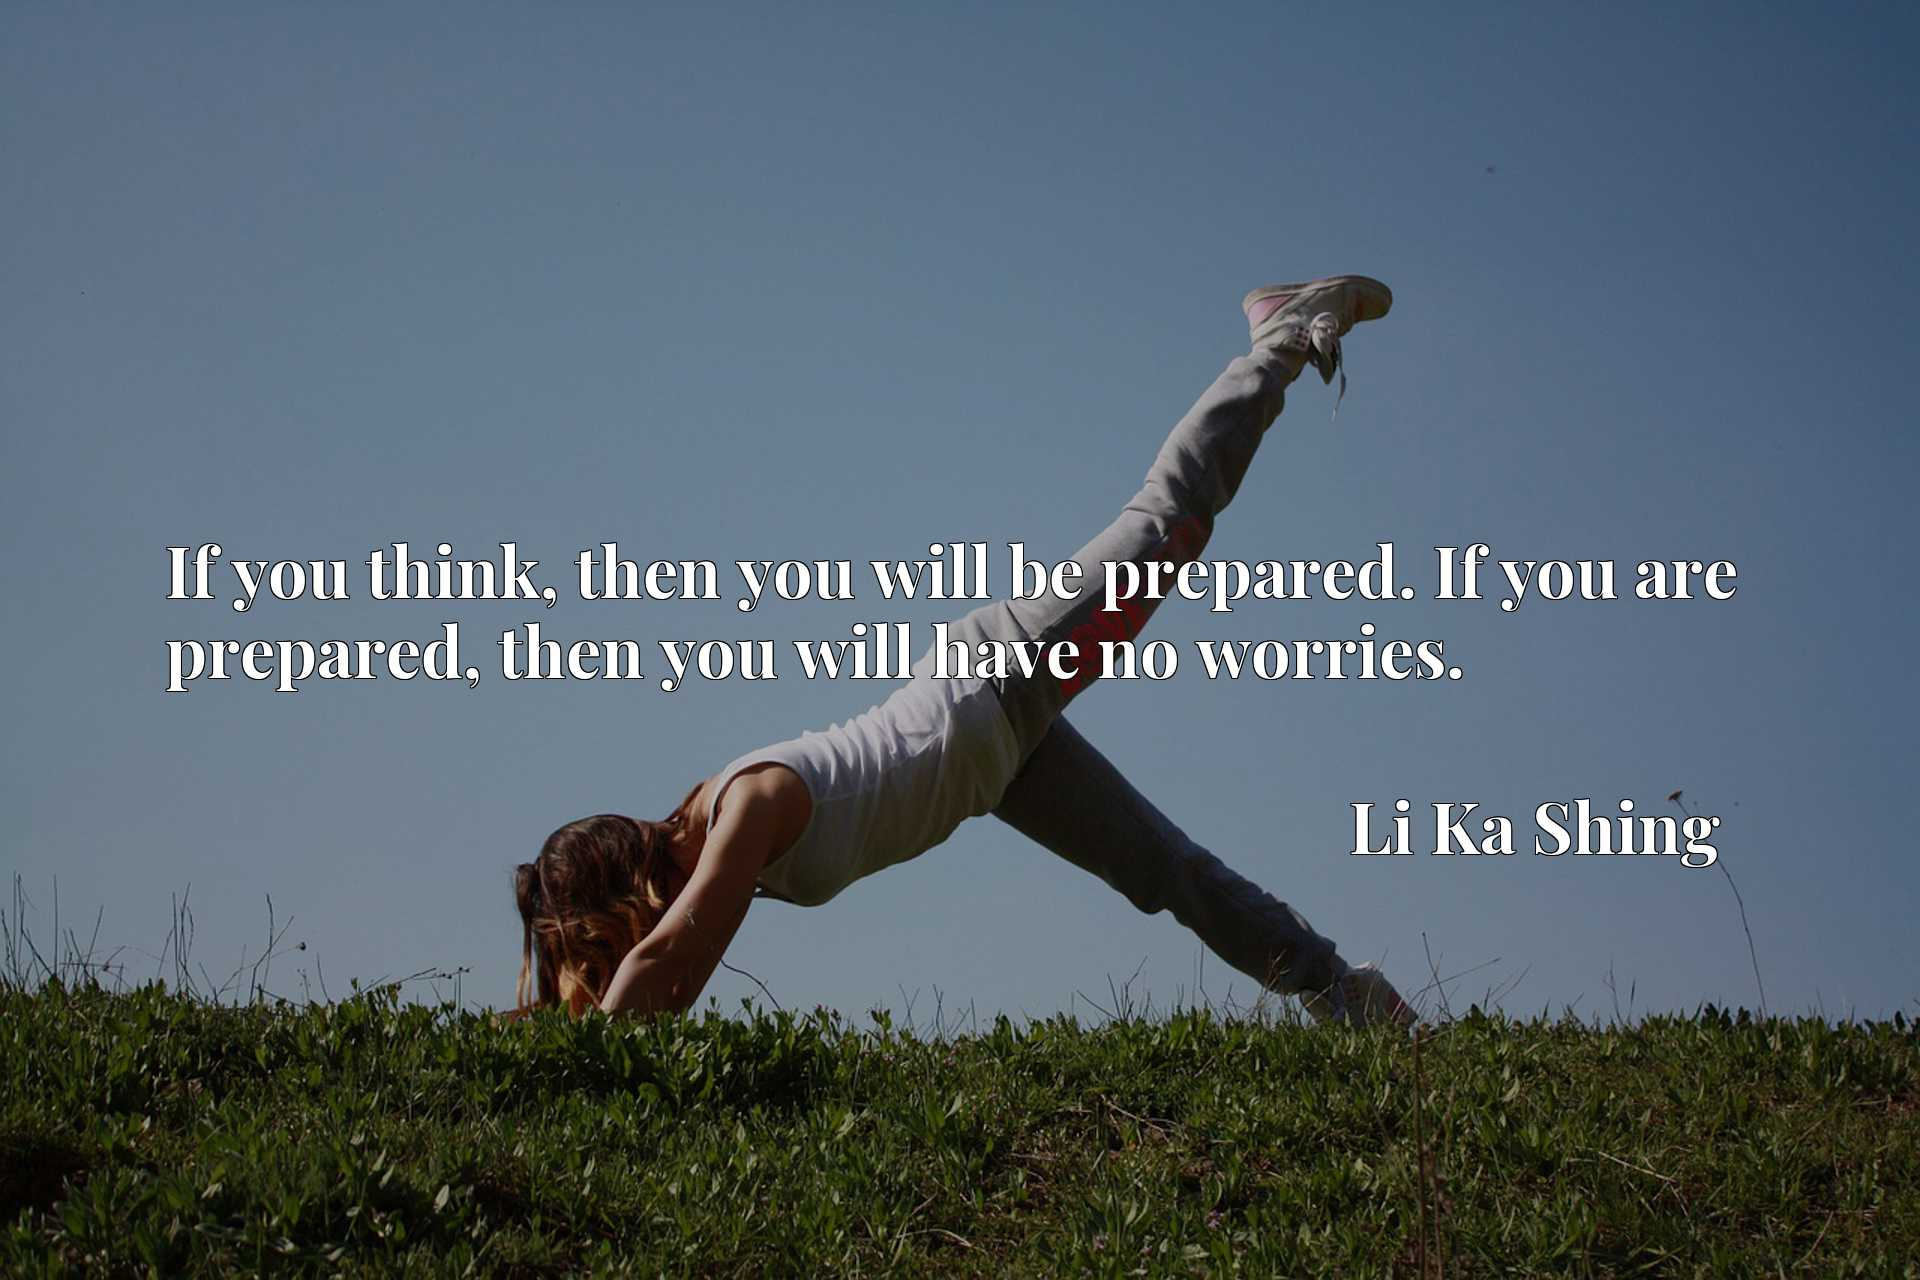 Quote Picture :If you think, then you will be prepared. If you are prepared, then you will have no worries.